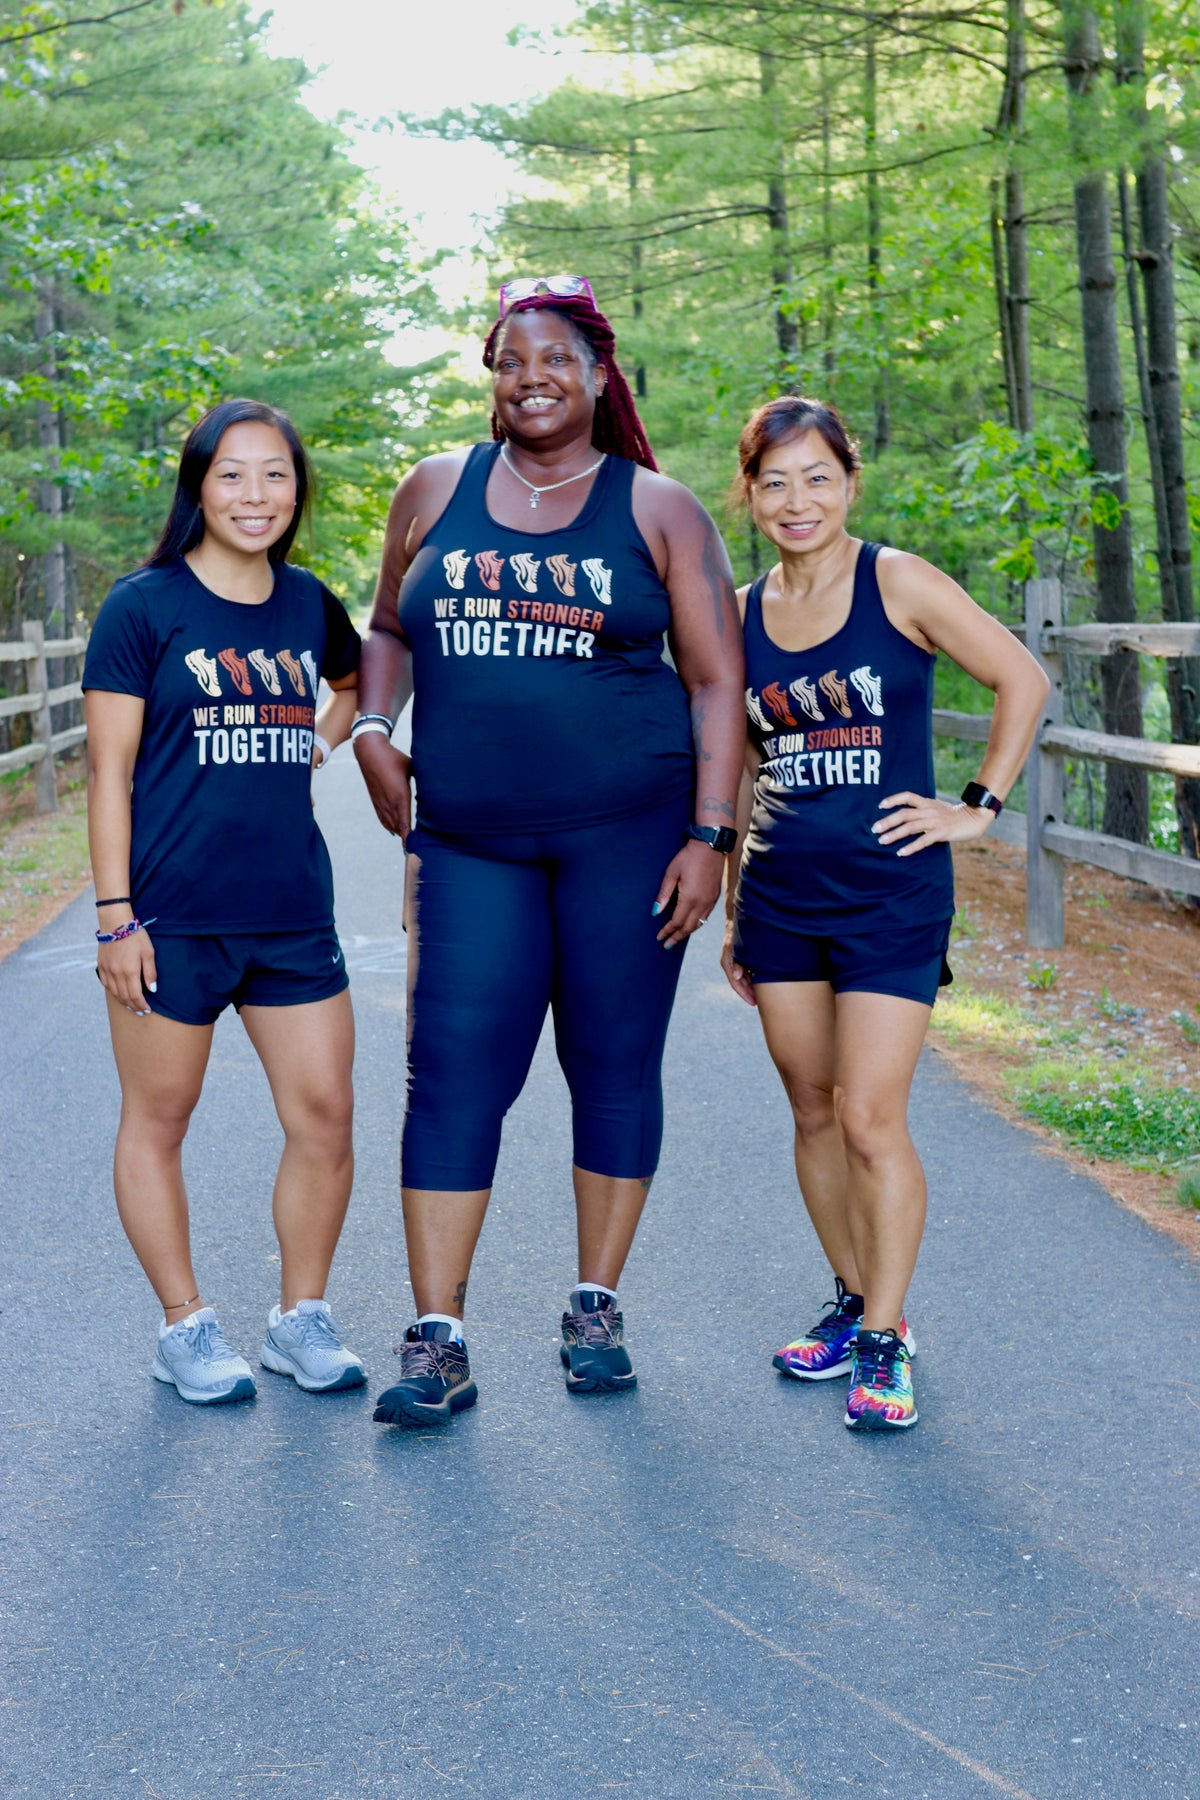 We Run Stronger Together Tank